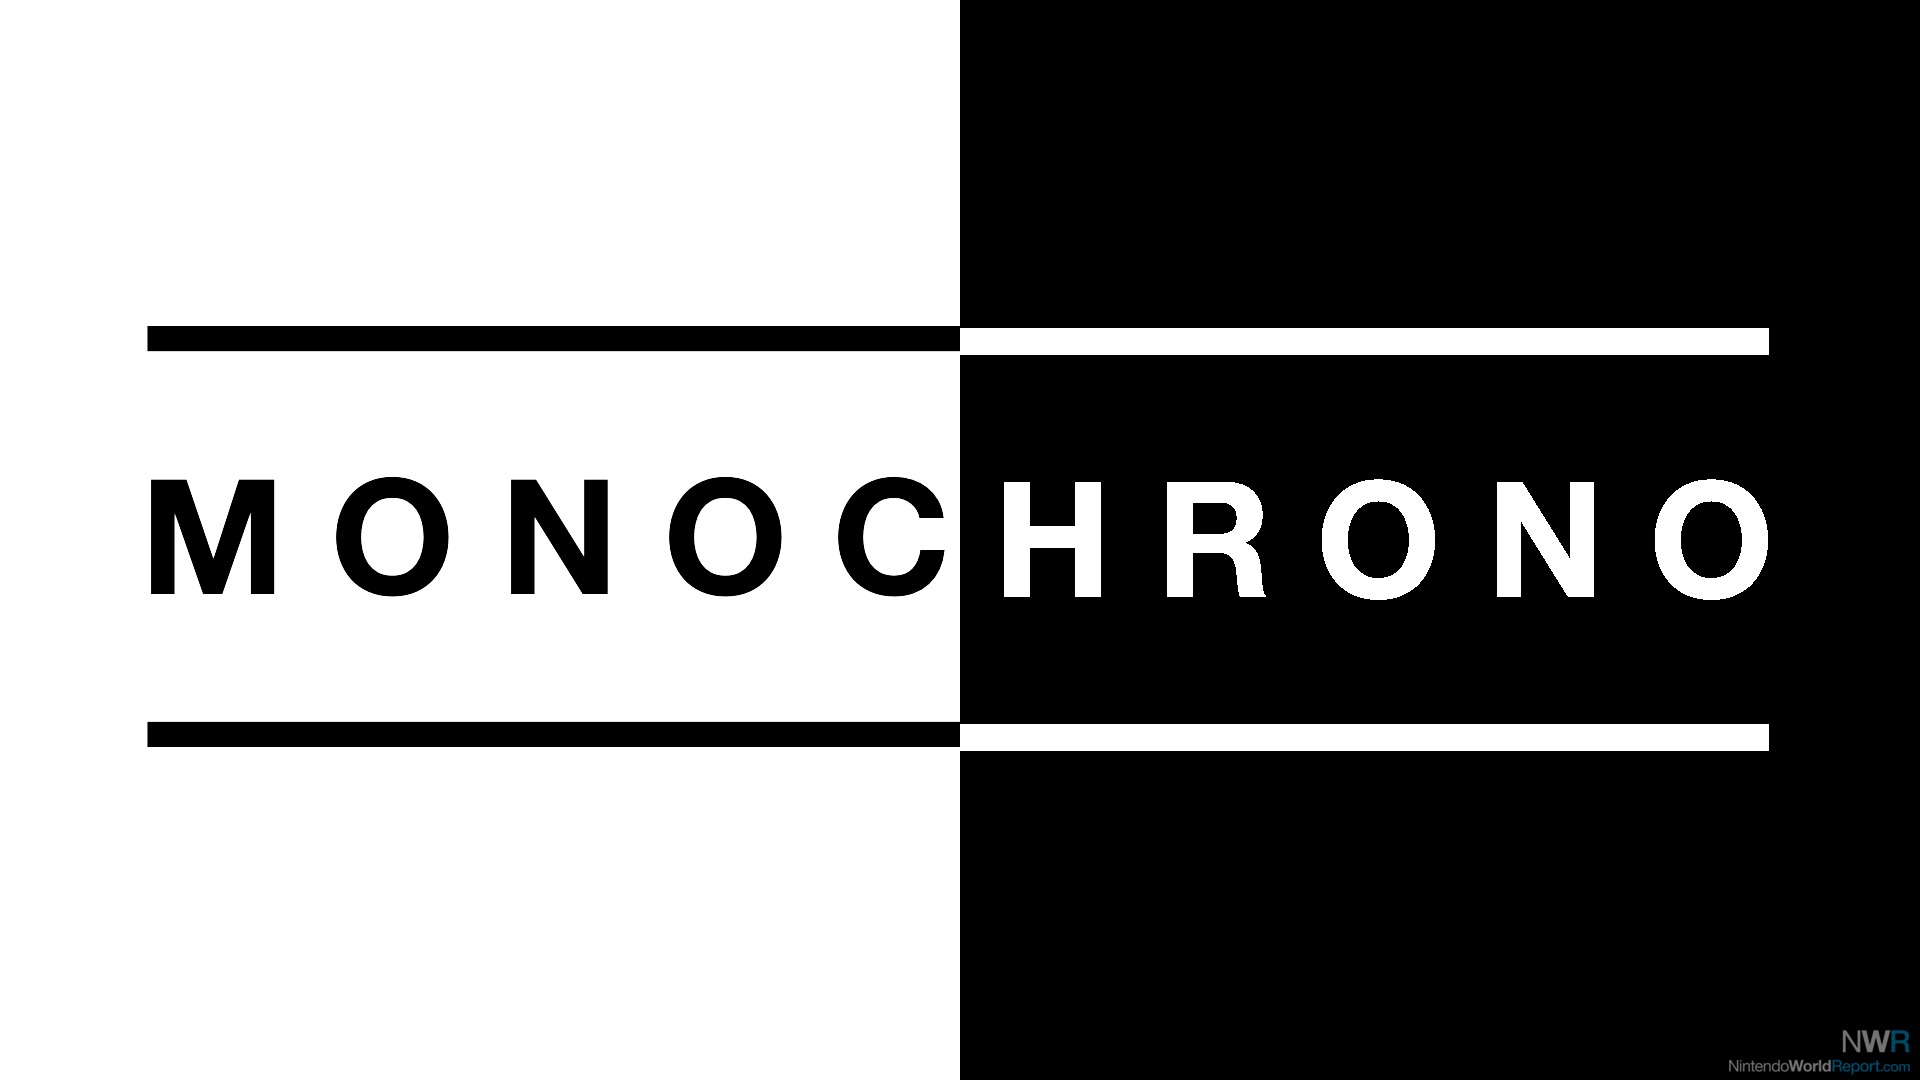 Monochrono Announced For Wii U